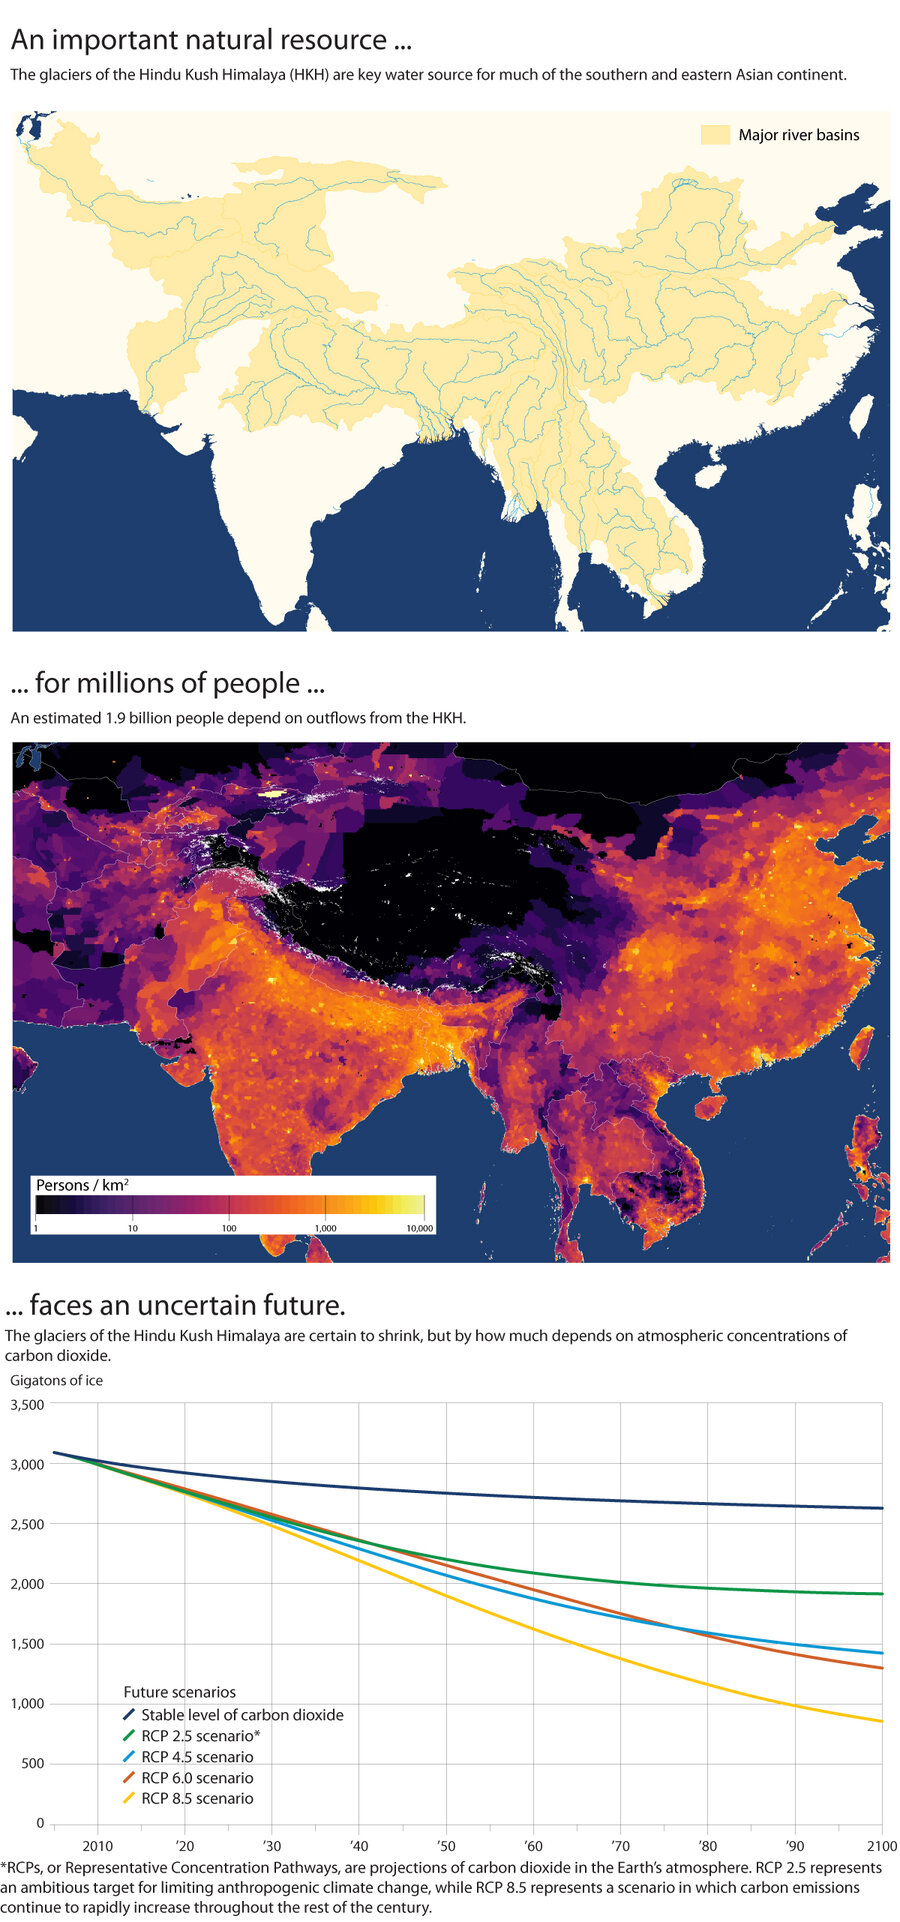 Nearly 2 billion people depend on Himalayan glaciers. What if they melt?